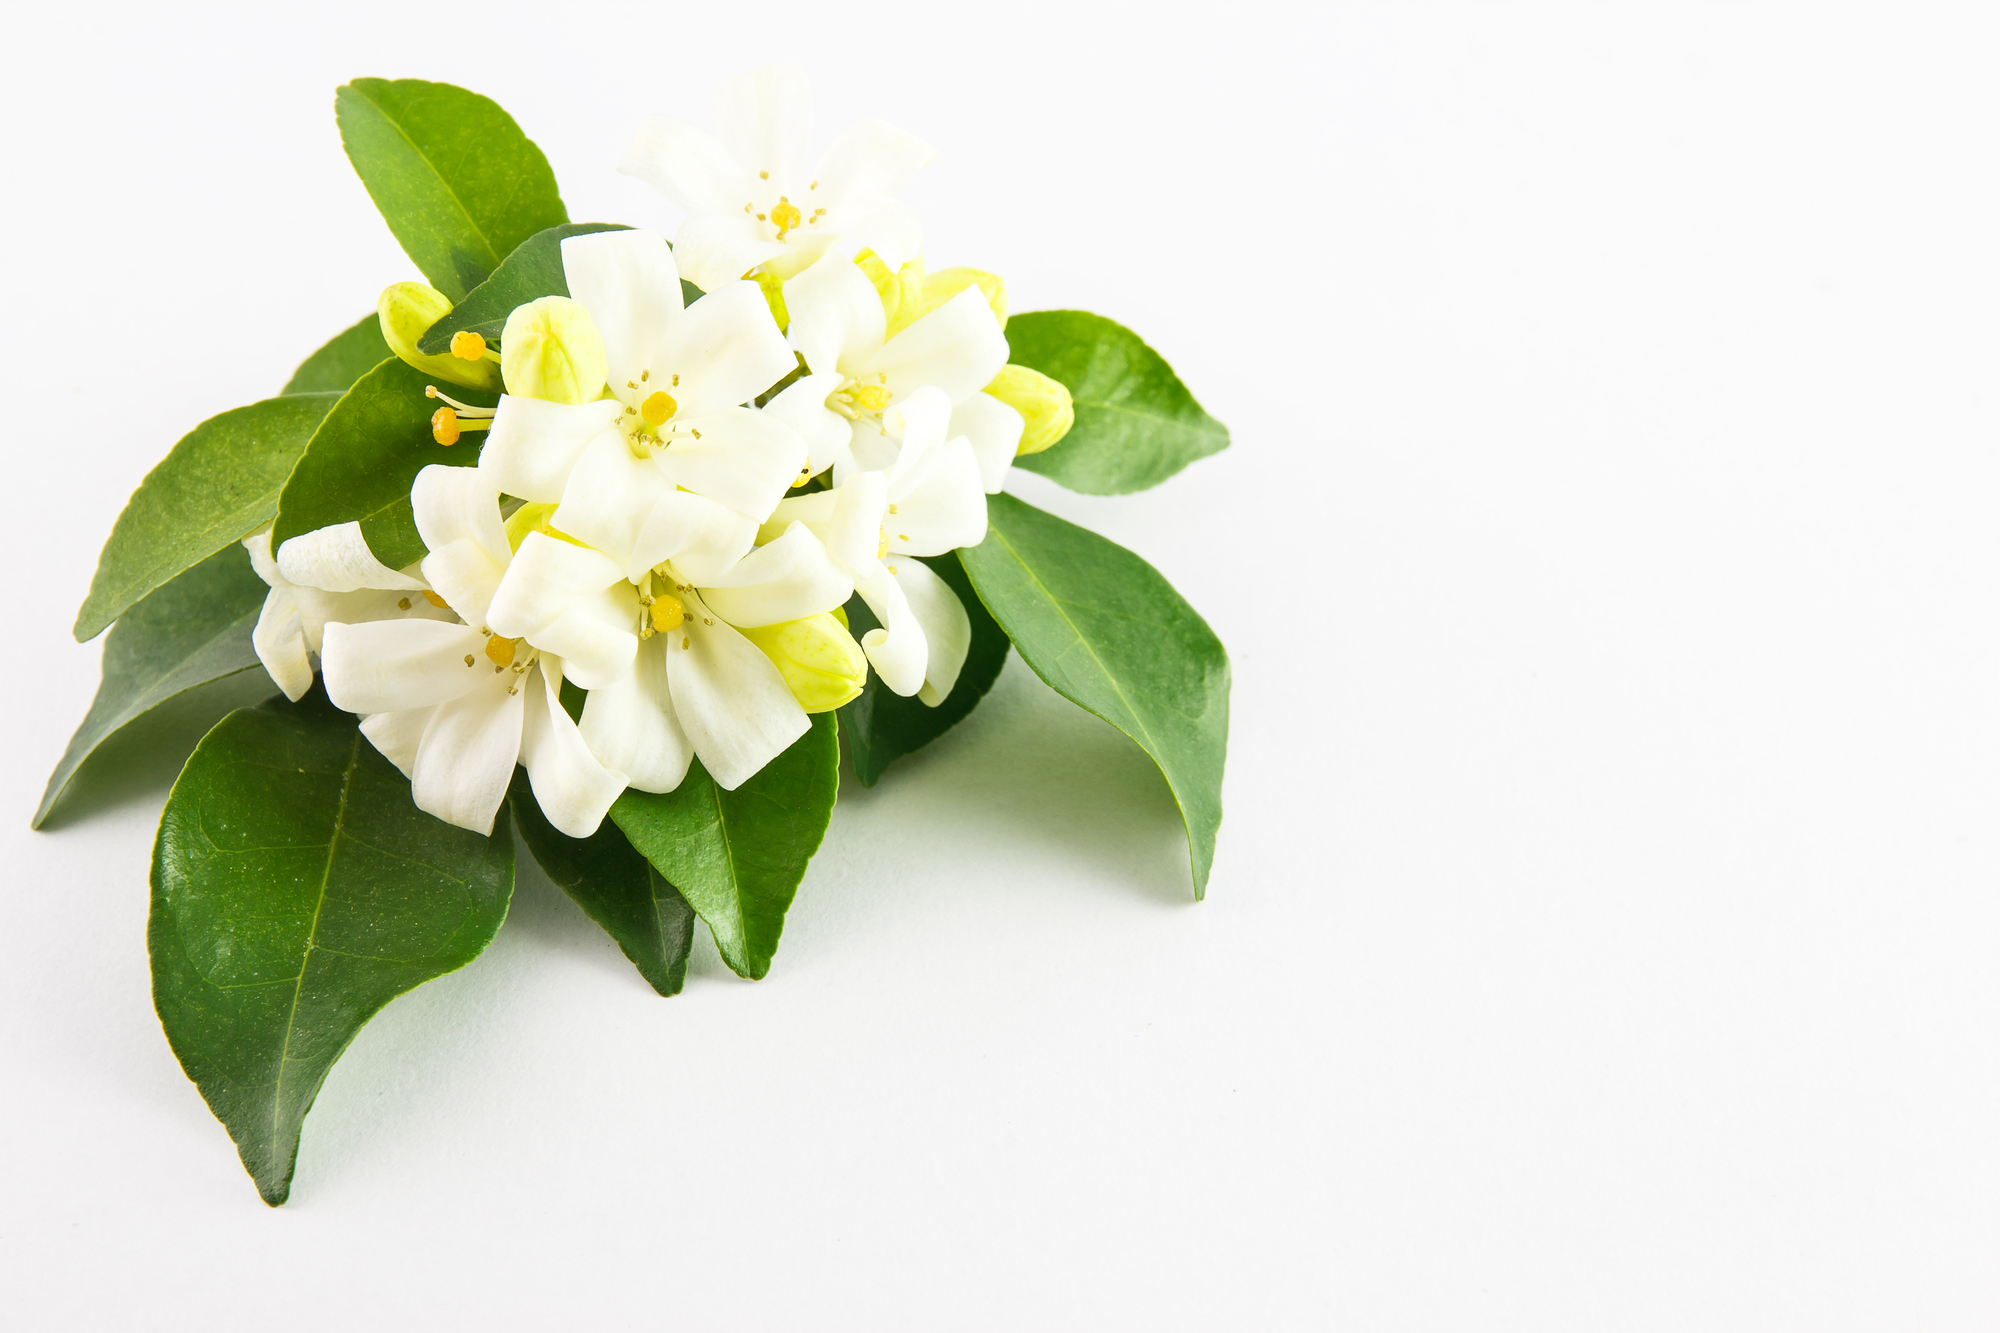 White flower, Orange Jessamine on white background, copy space available